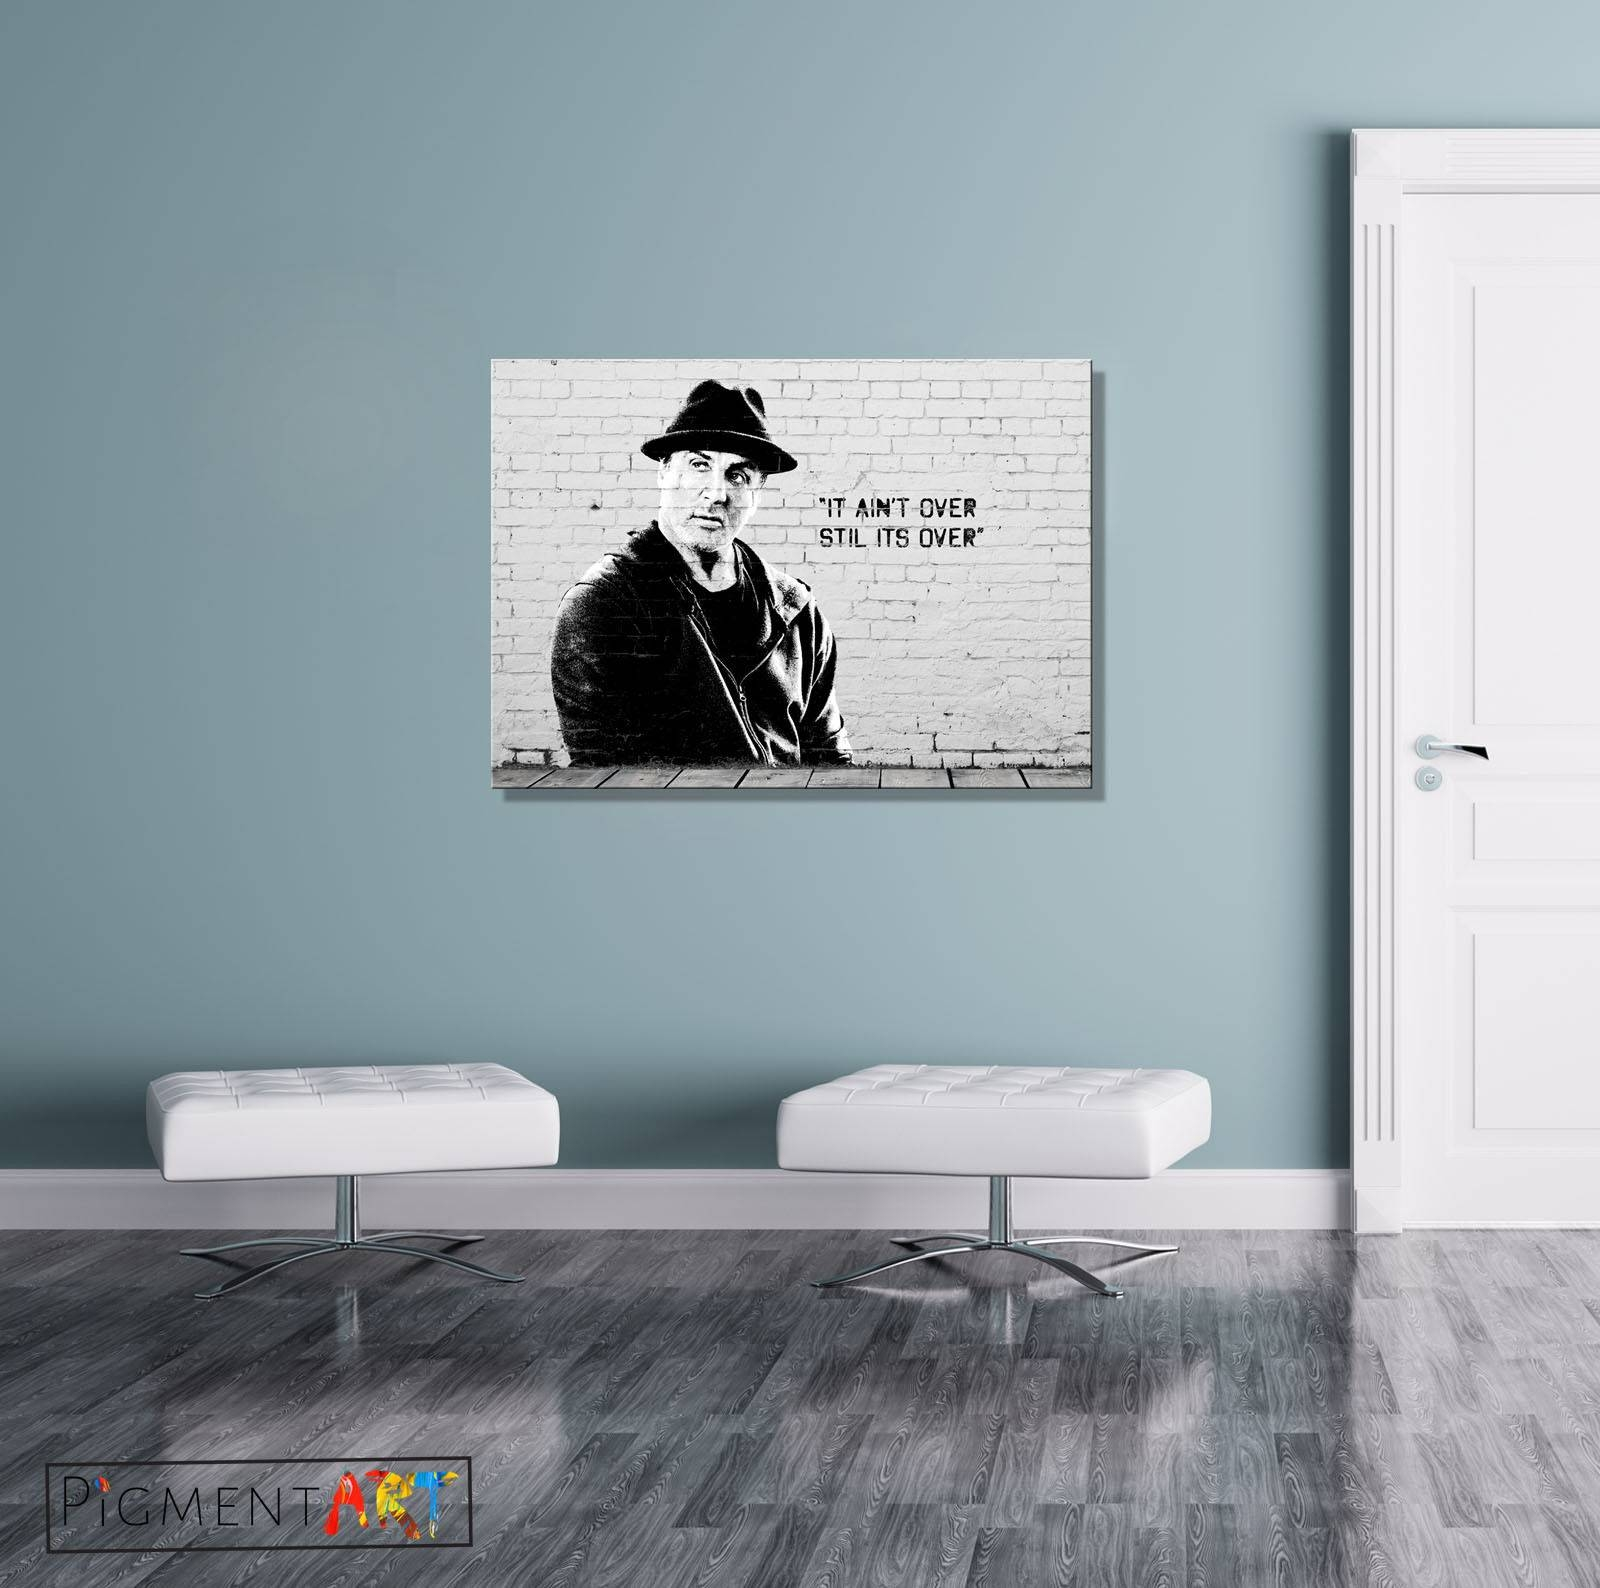 Large Rocky Balboa Quote Graffiti Street Art Canvas Wall Art Within Most Recent Rocky Balboa Wall Art (View 8 of 20)